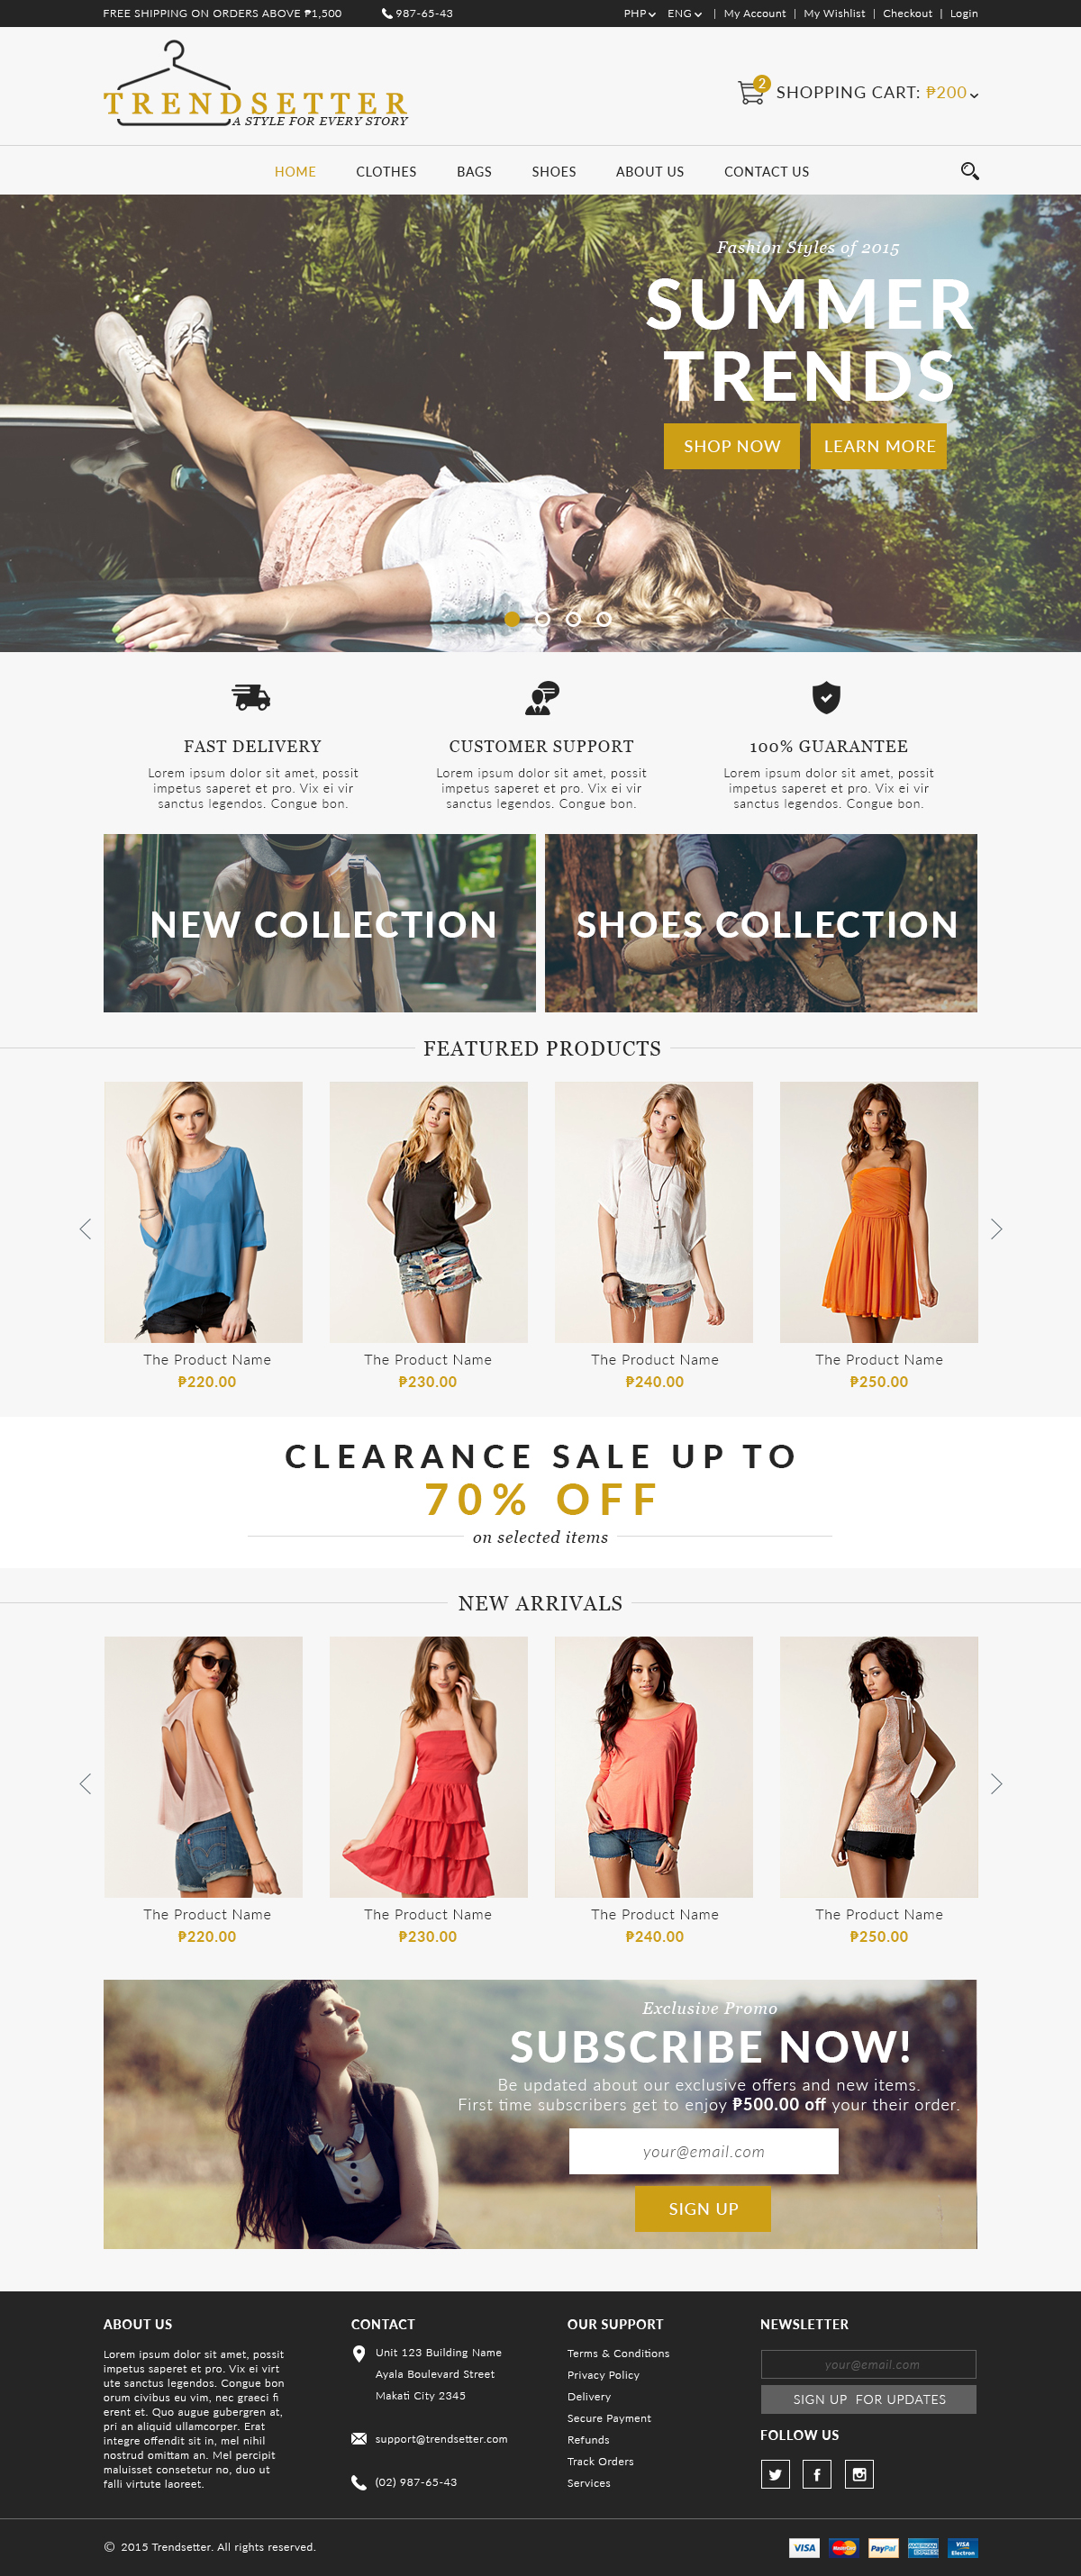 Trendsetter E-Commerce Homepage